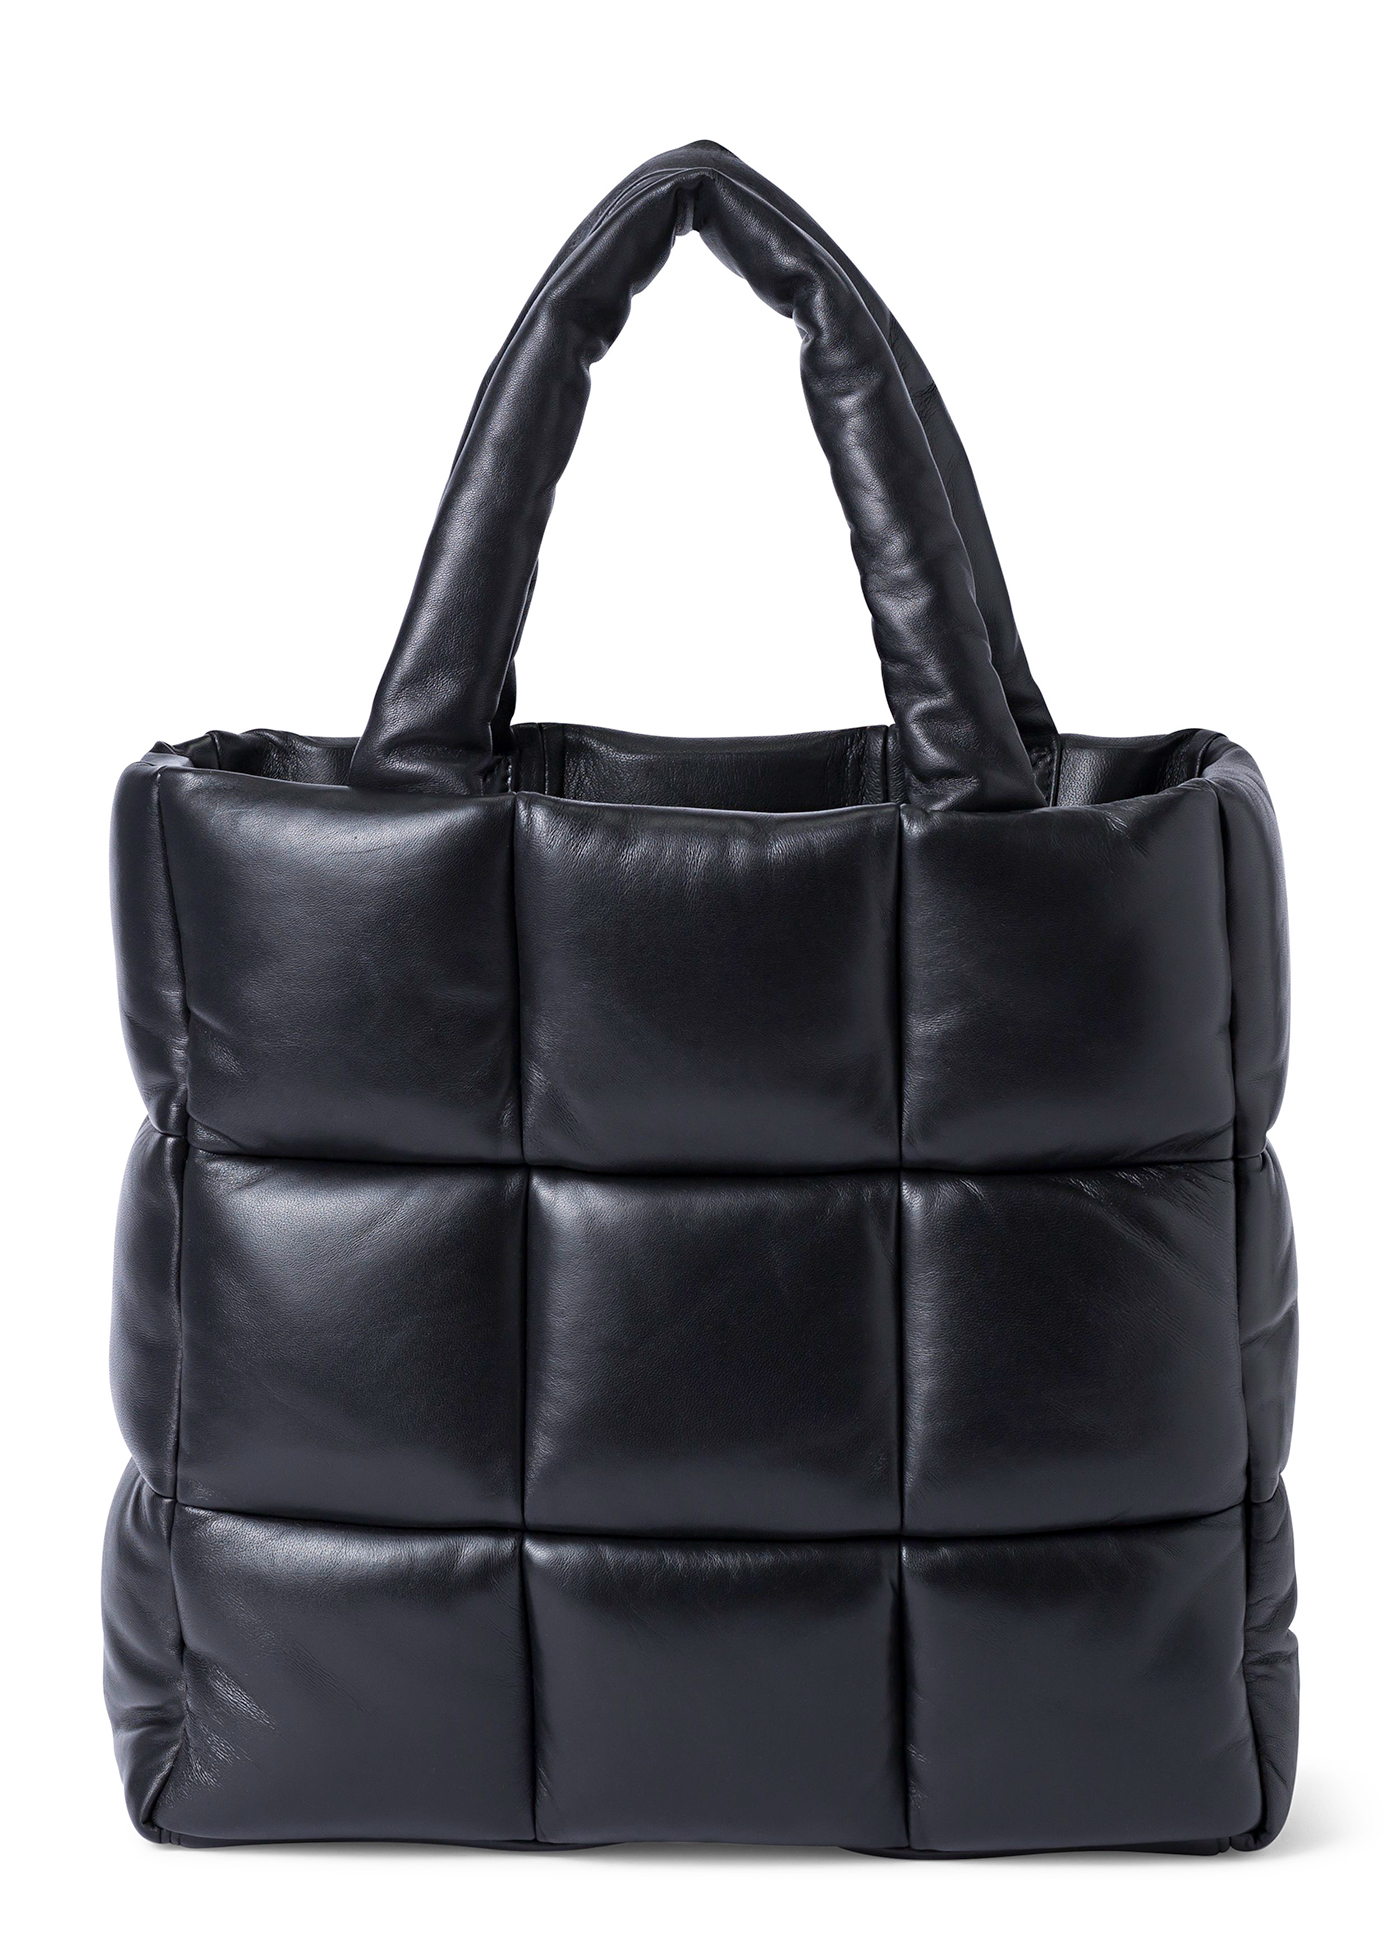 Assante Puffy Leather Bag image number 0